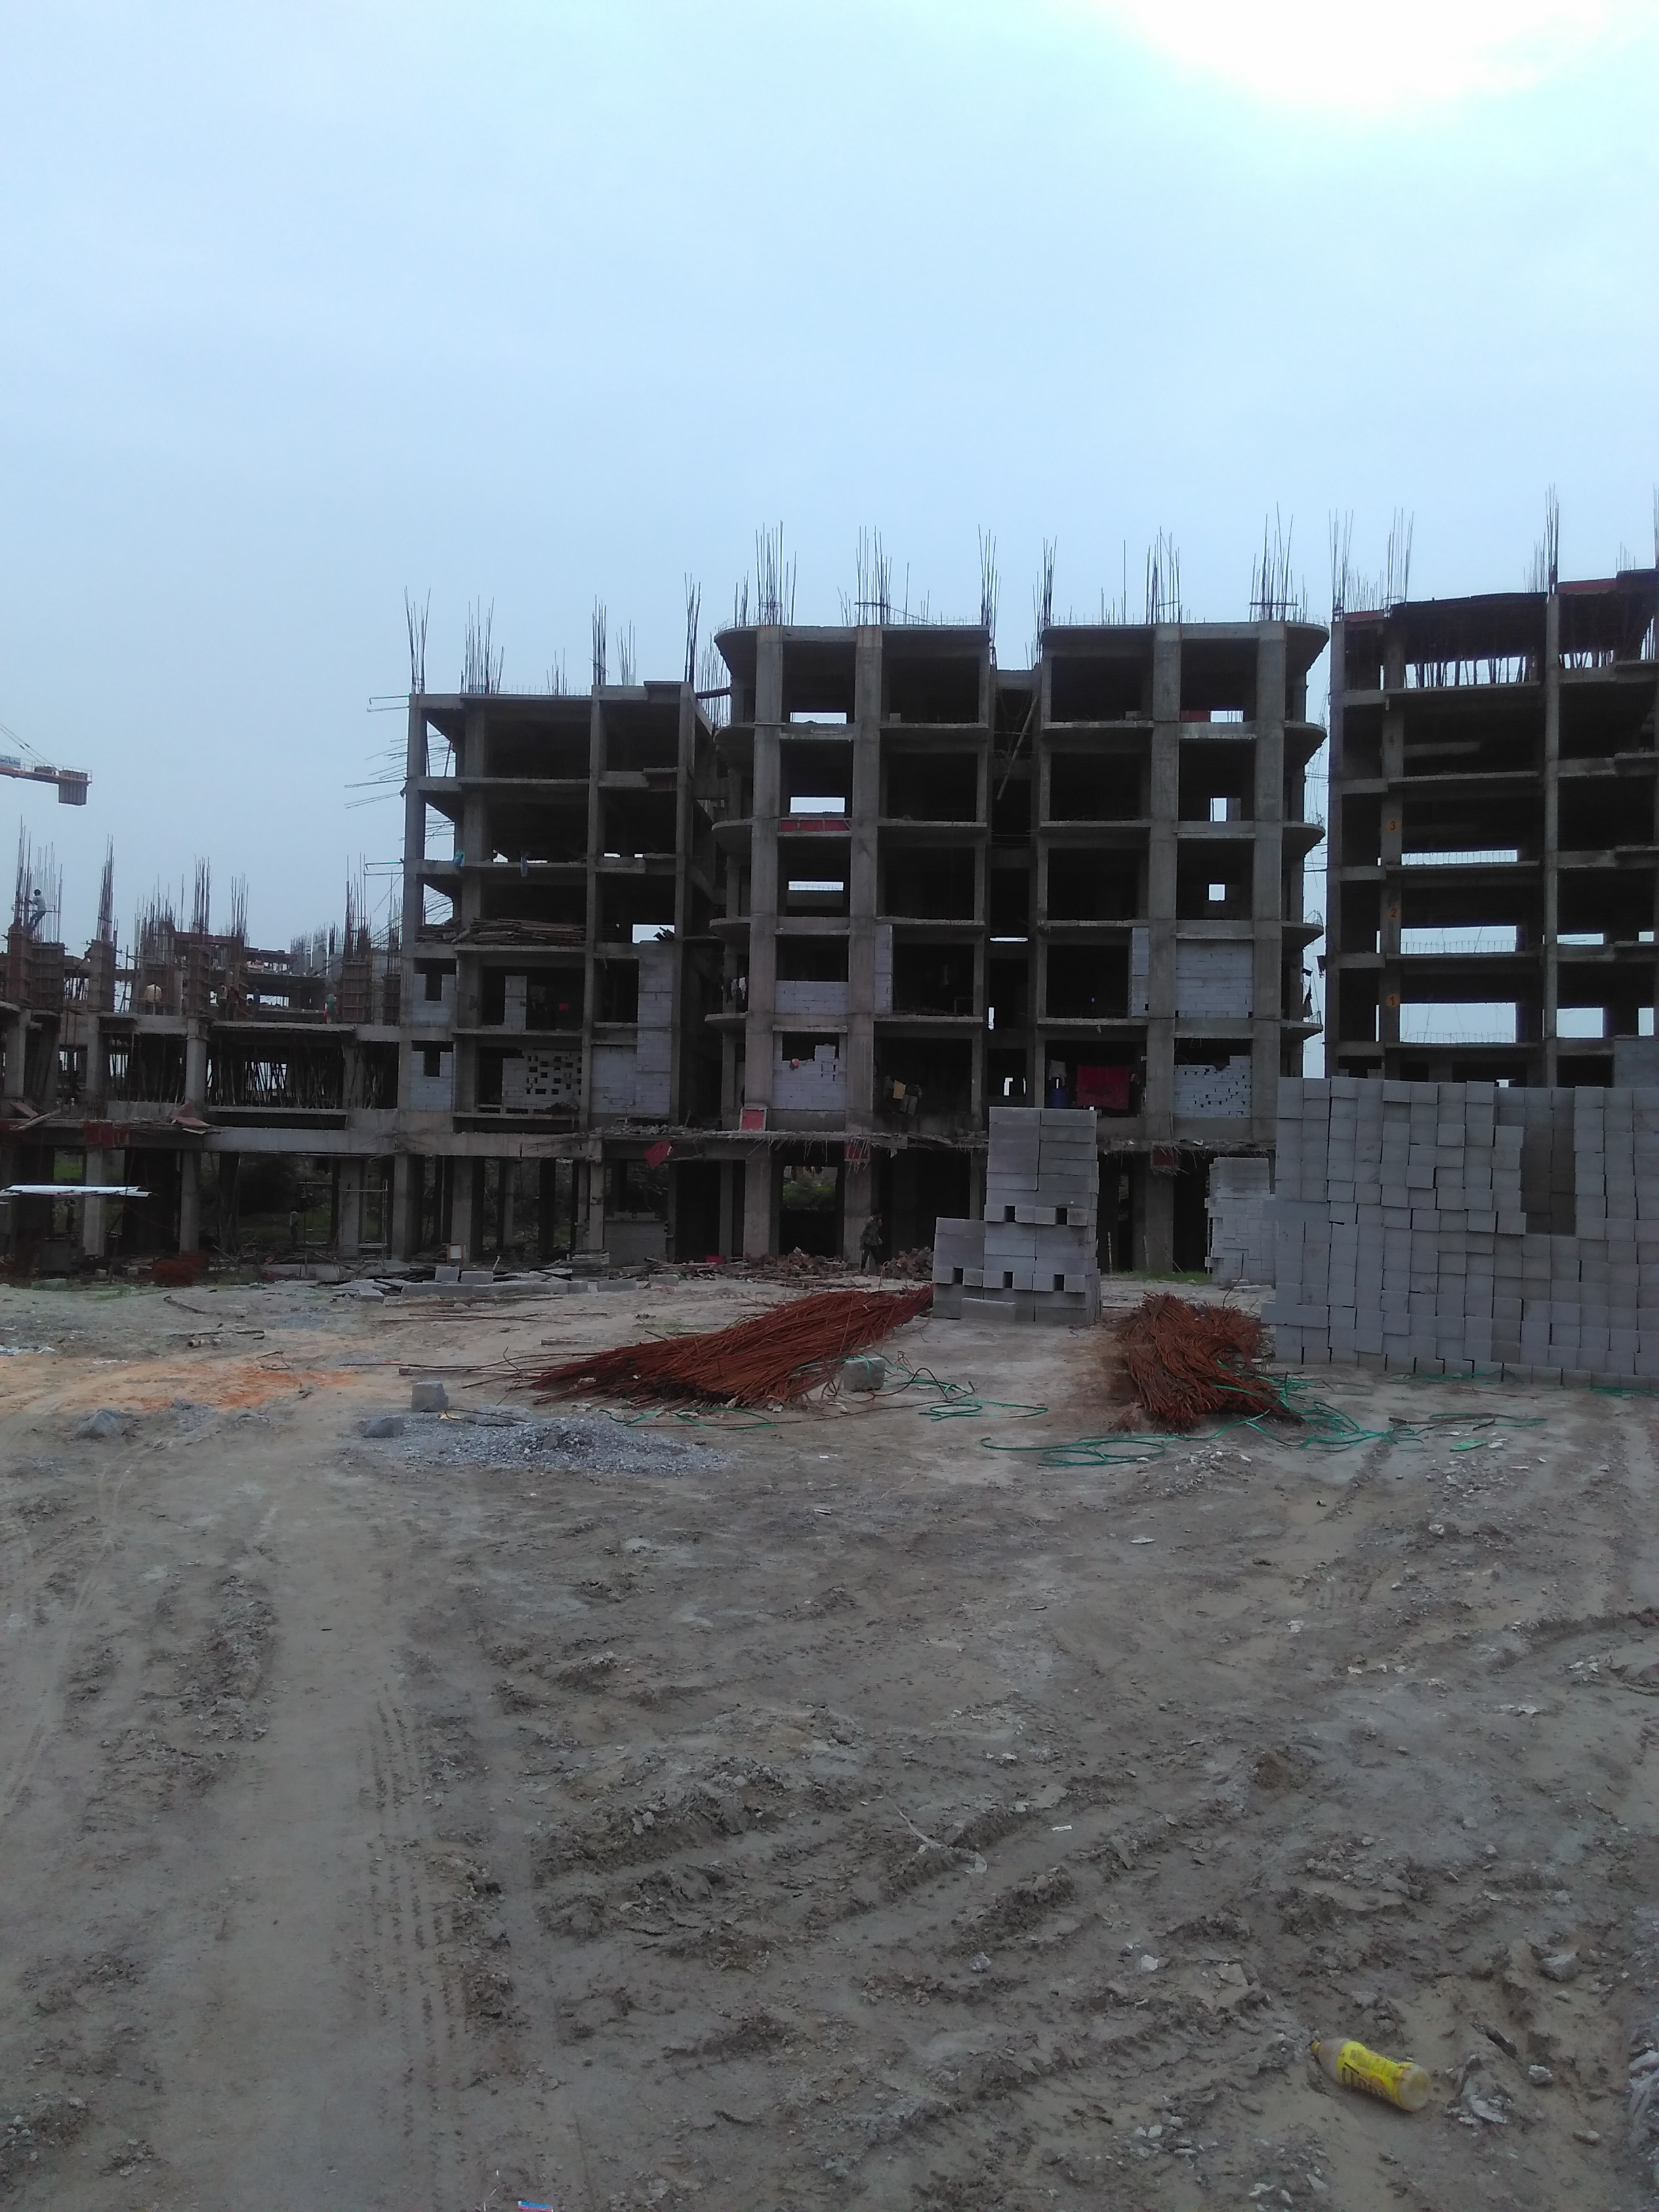 Construction update as on 1 8 18 | IPESAS News